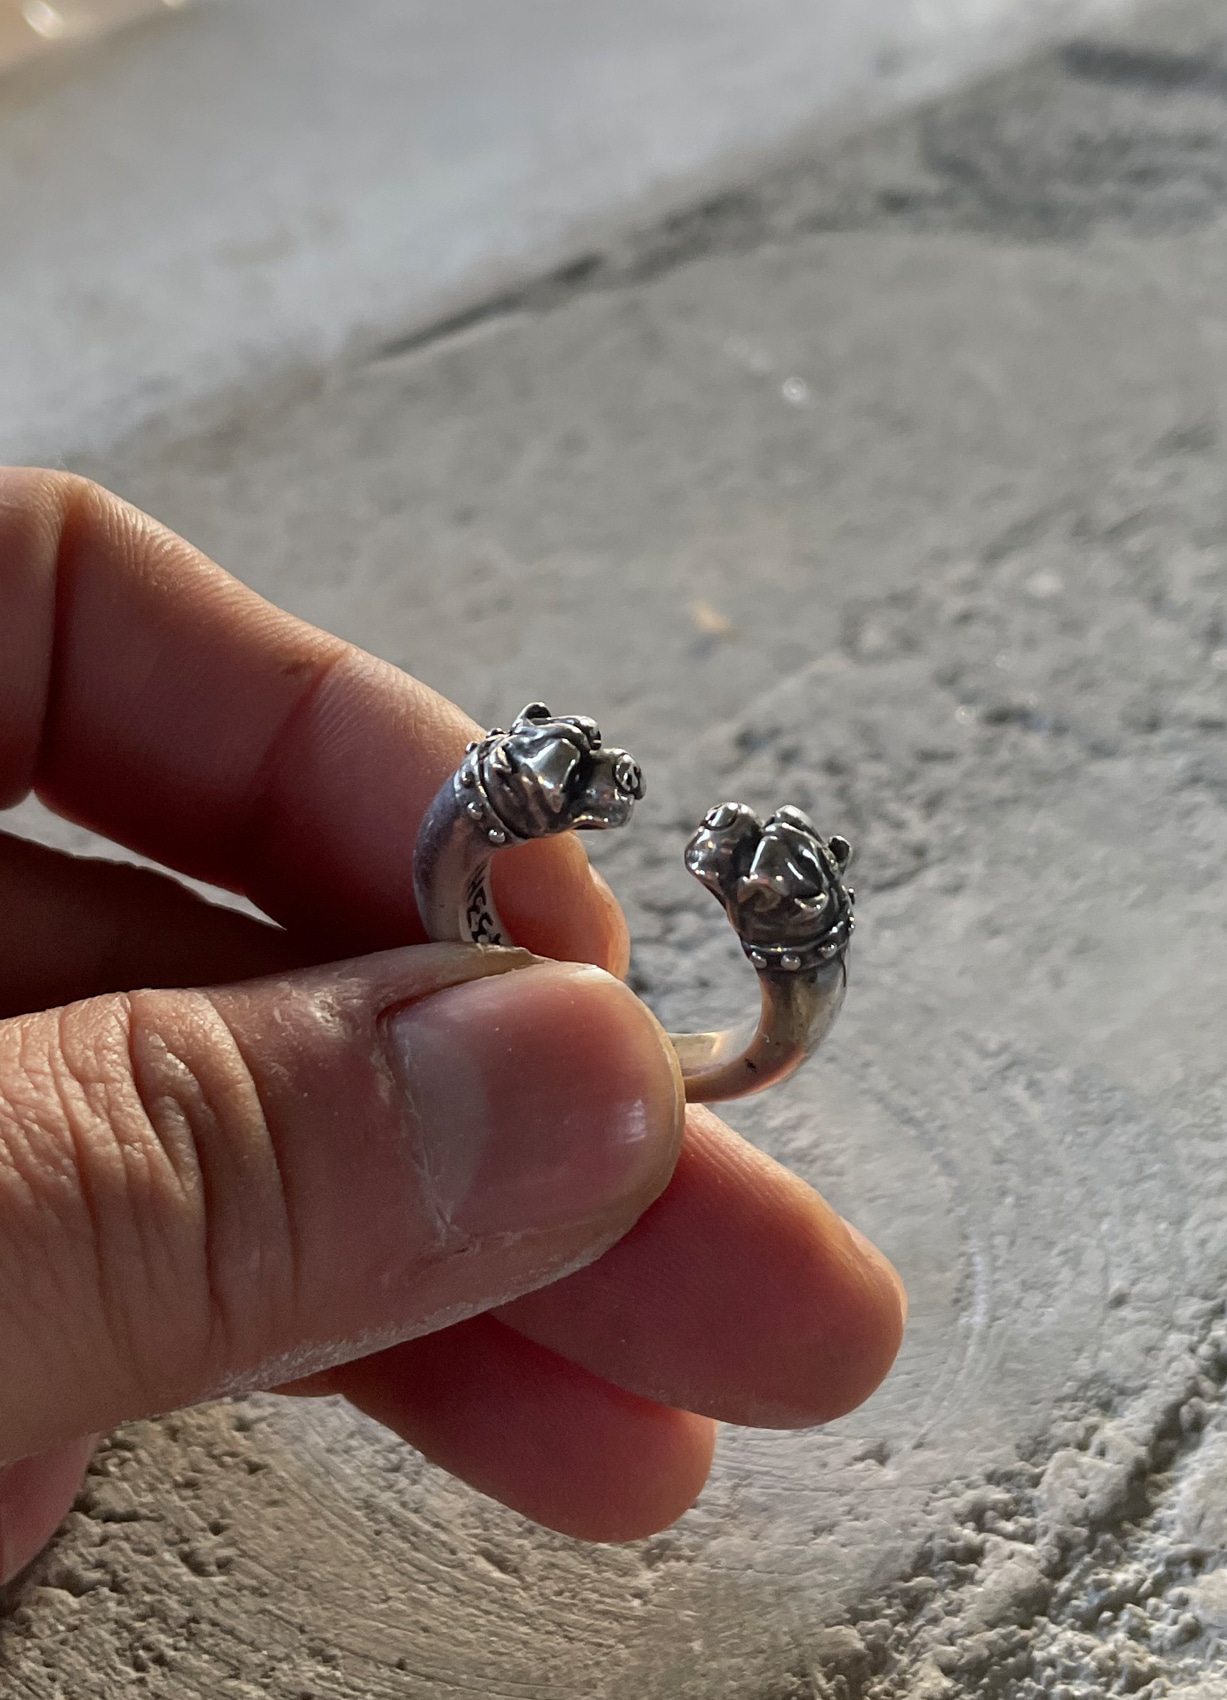 CRAZY DOG SILVER RING INSTOCK 20호